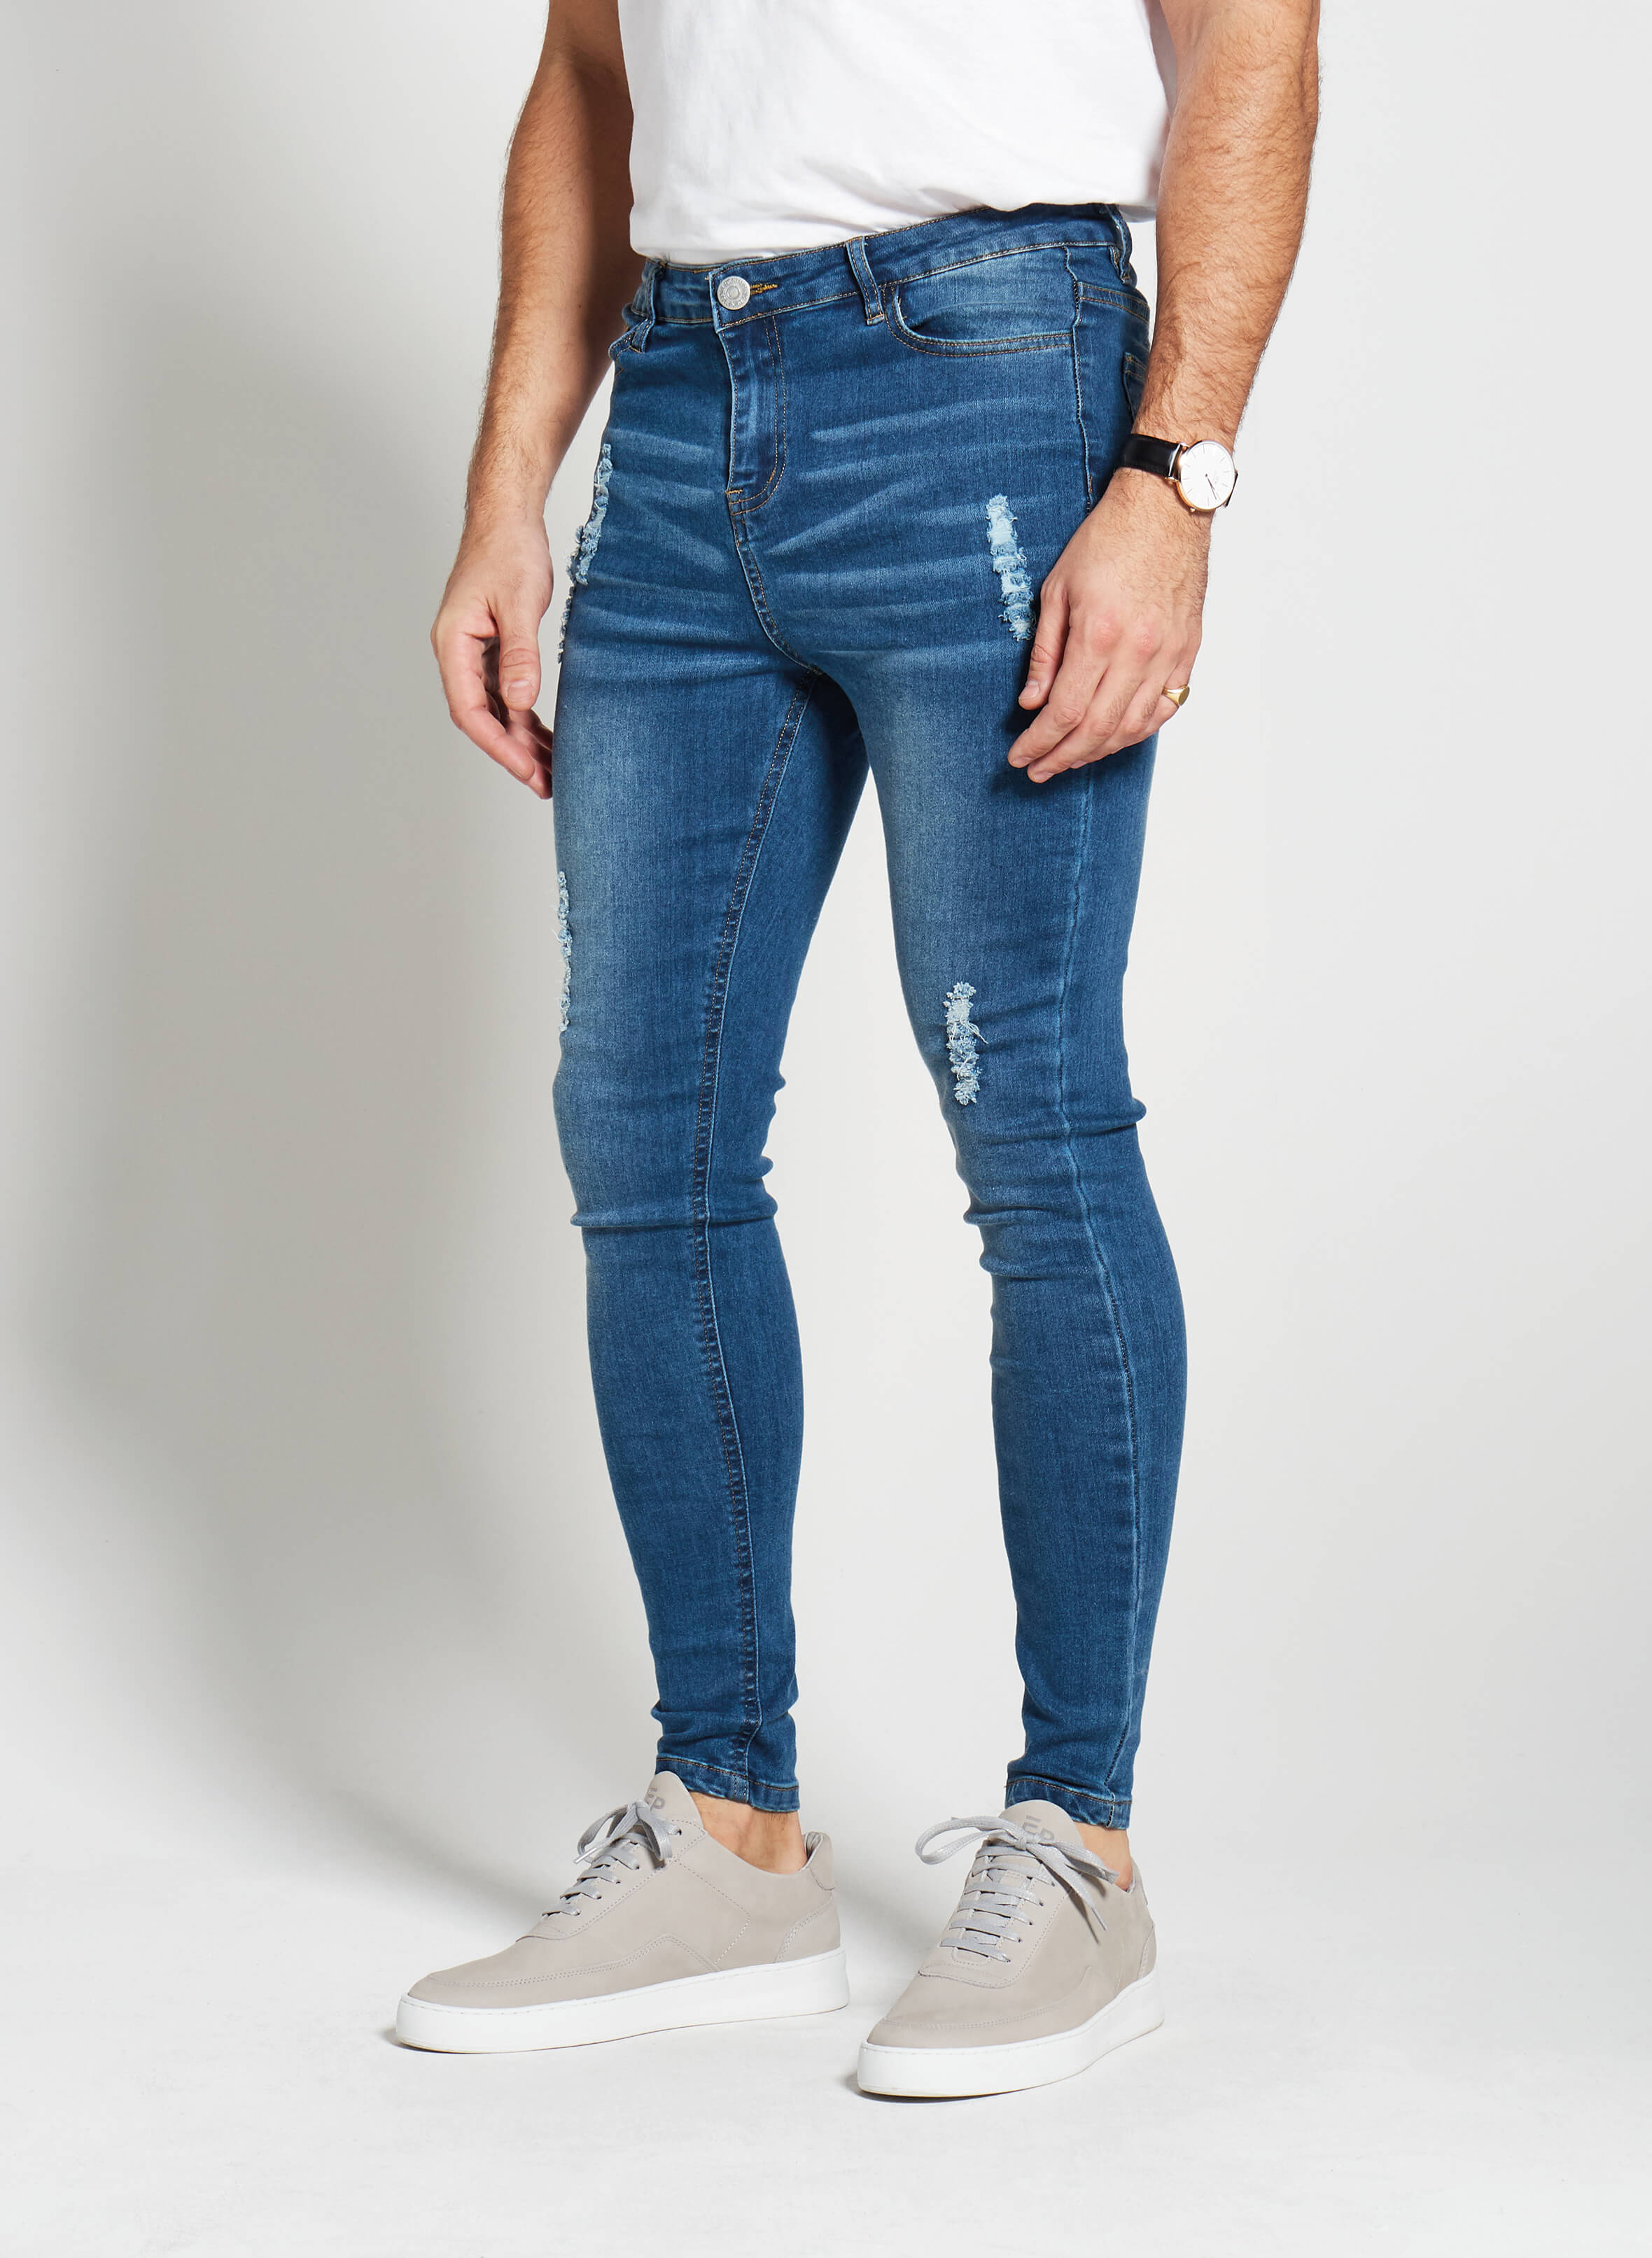 Denim Only® Spray On Jeans - Distressed Blue